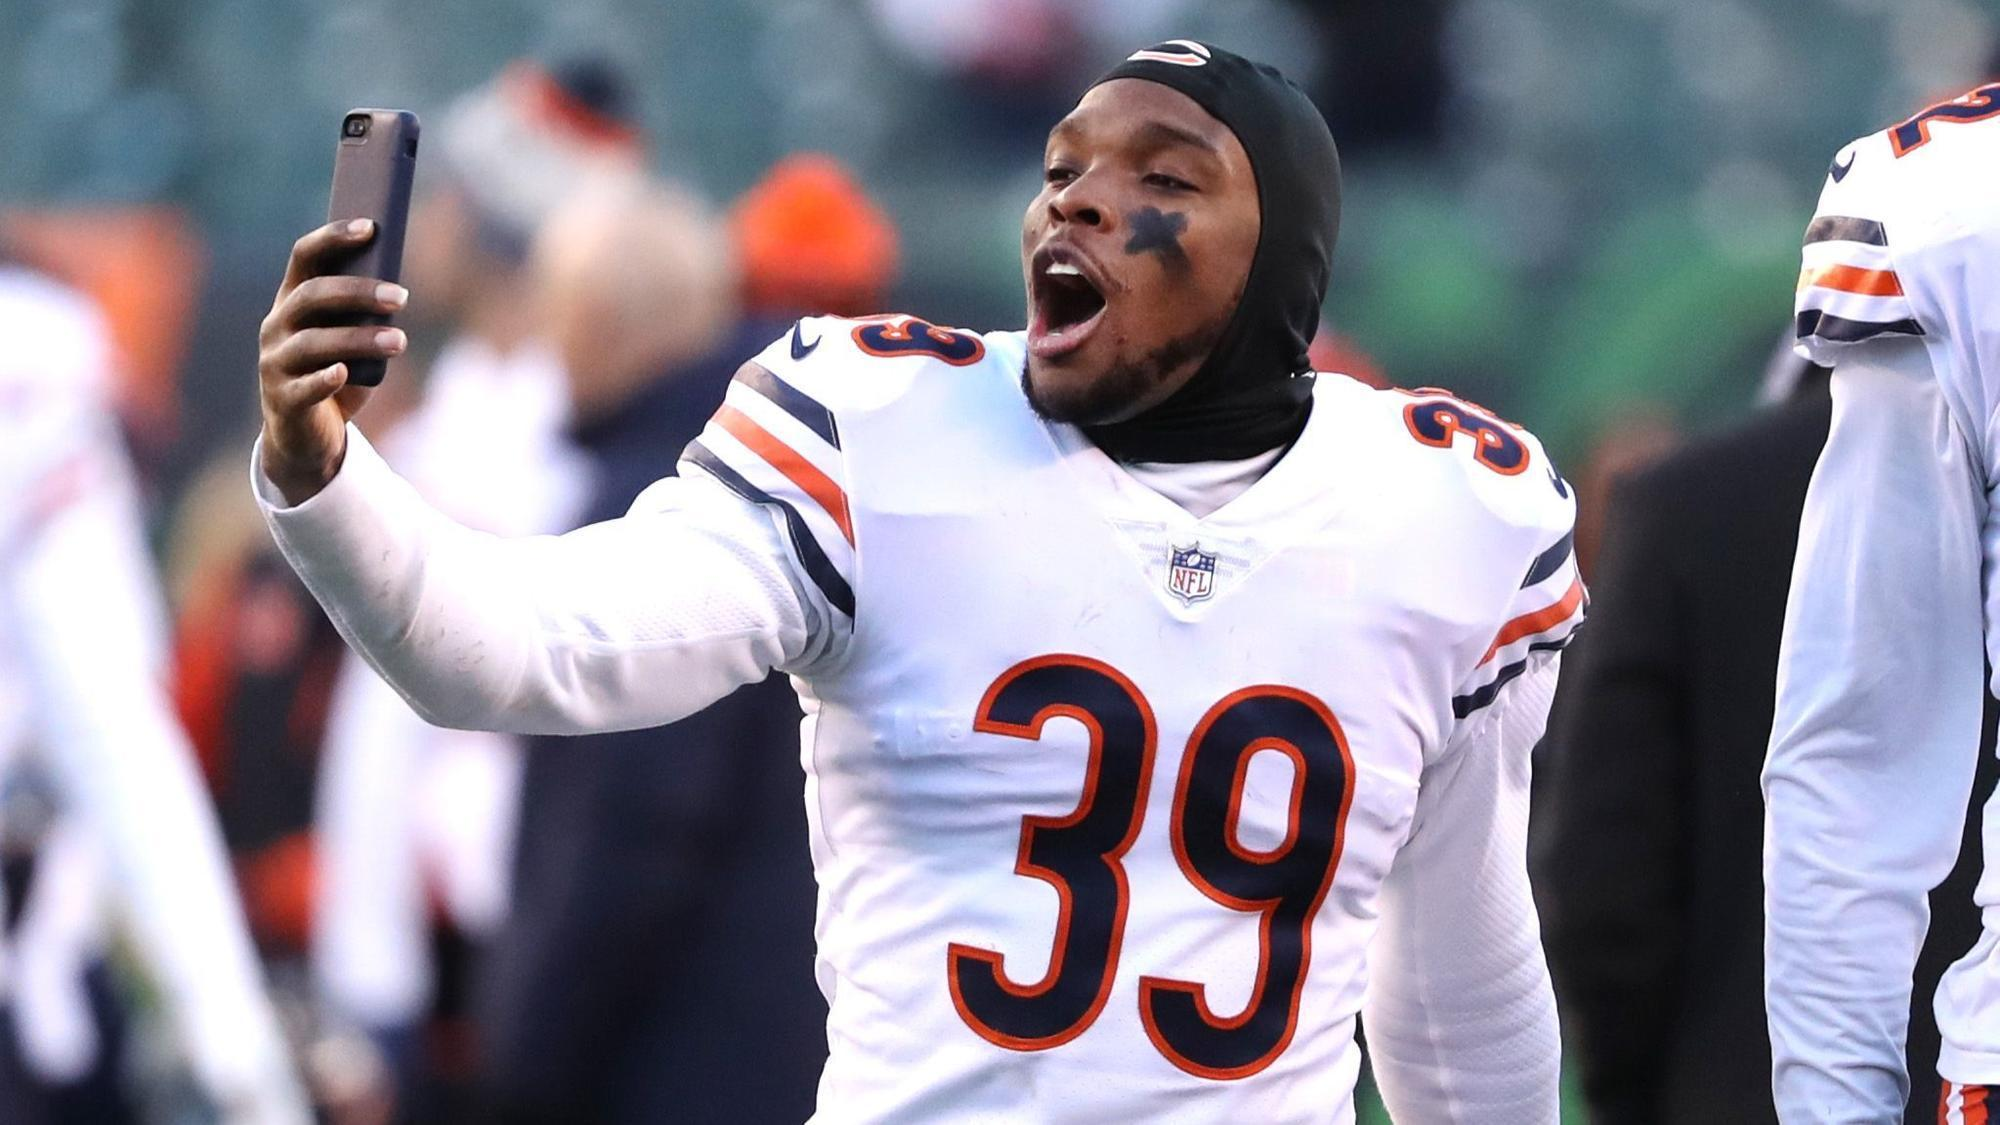 Ct-spt-bears-safeties-season-review-20180217